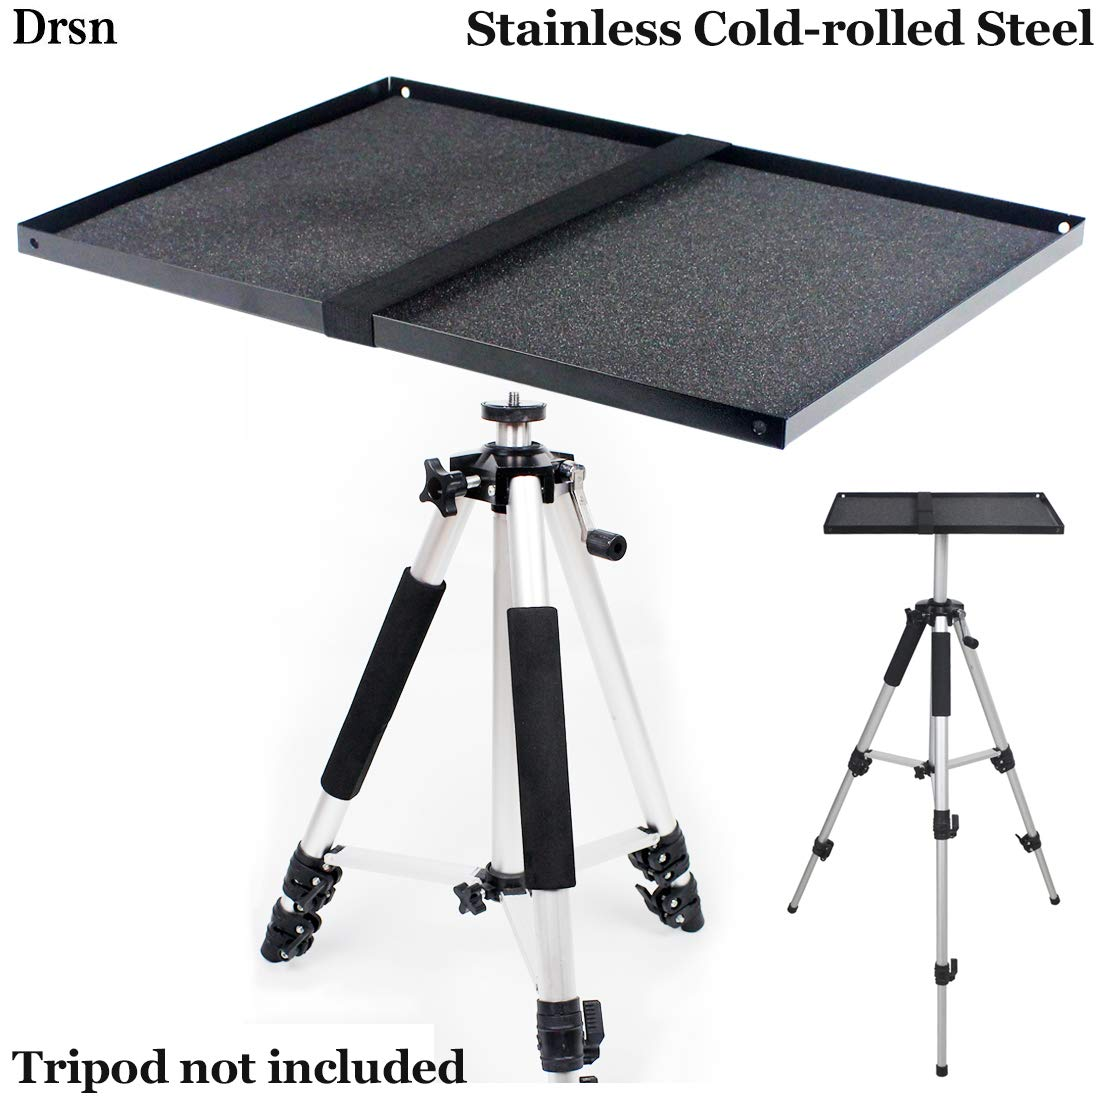 Projector Tripod Tray Platform Holder Pallet for Tripod Stand Mount 3/8'' Screw Mountable for Projectors SLR laptops DJ Equipment Mixers Amplifiers Audio/Video Devices (Tray Only)